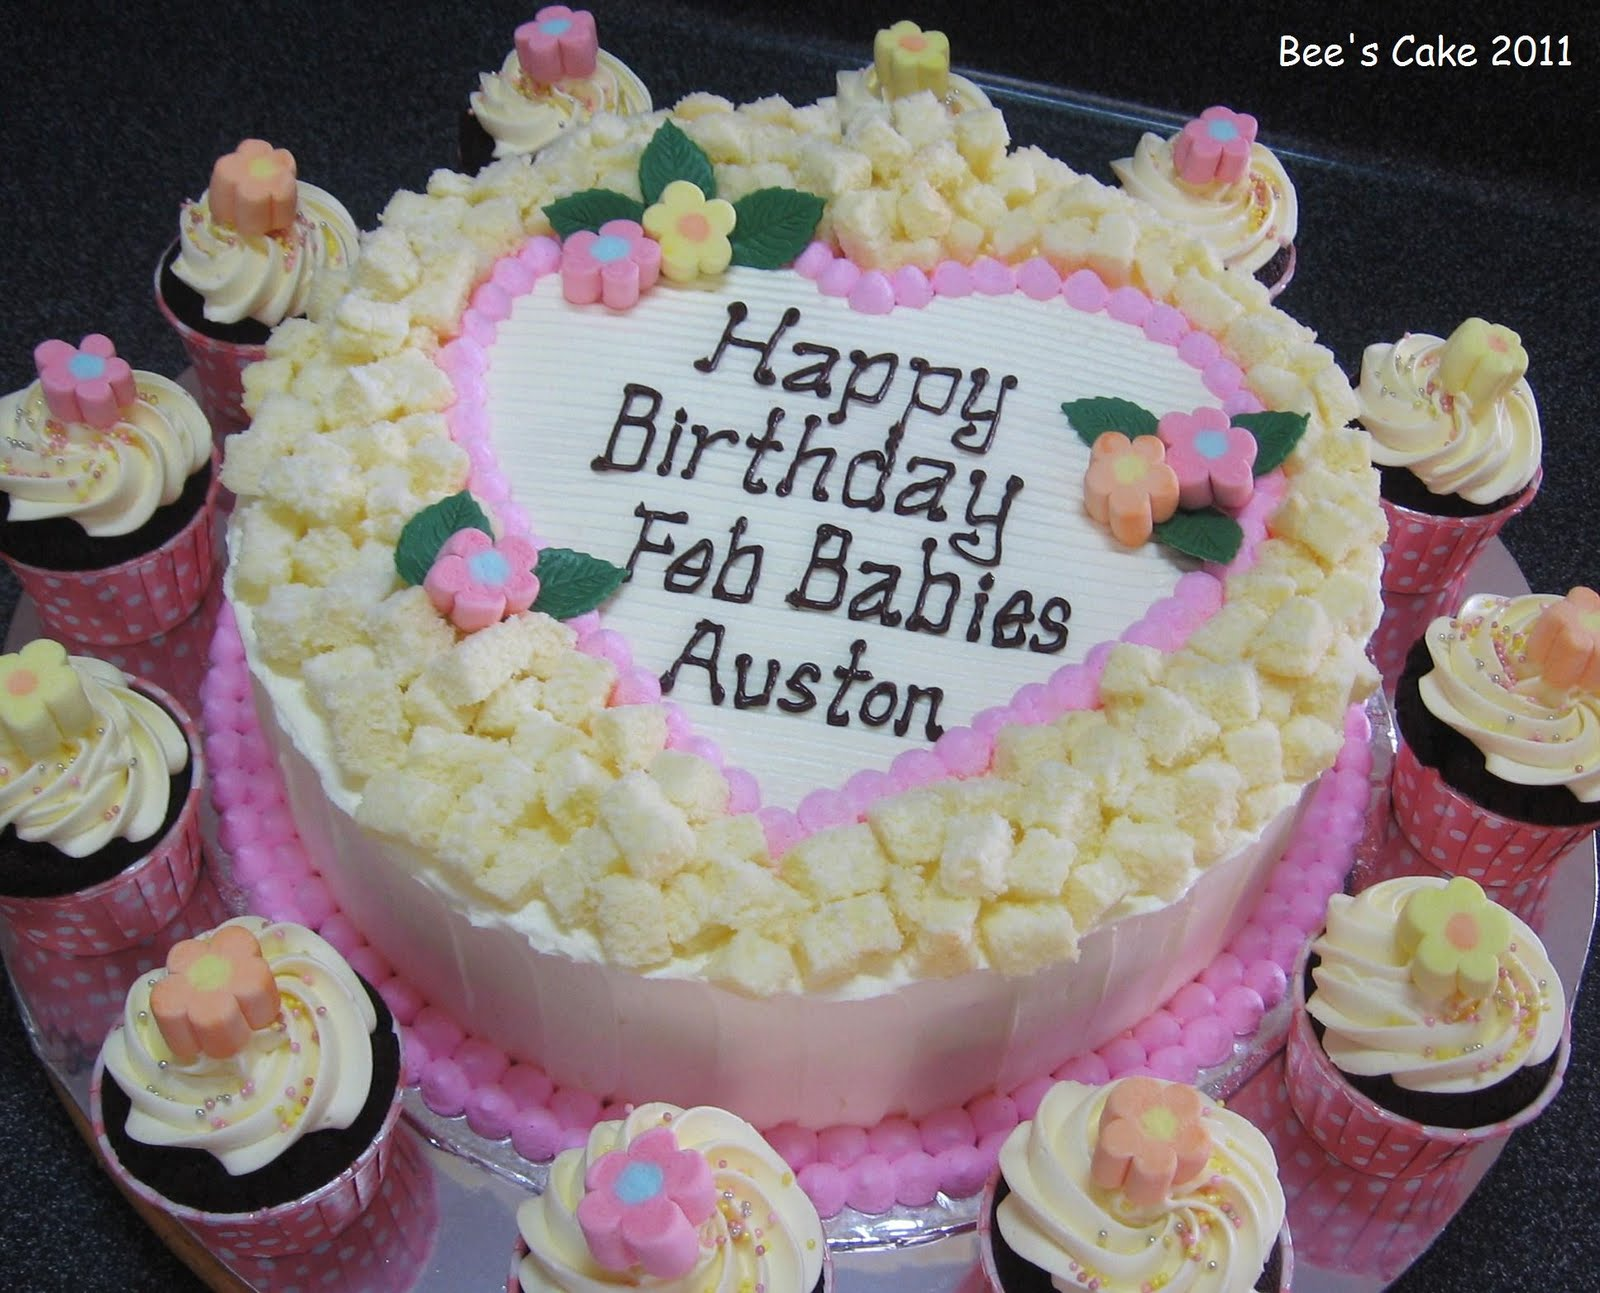 Labels: 2 in 1 birthday cake,